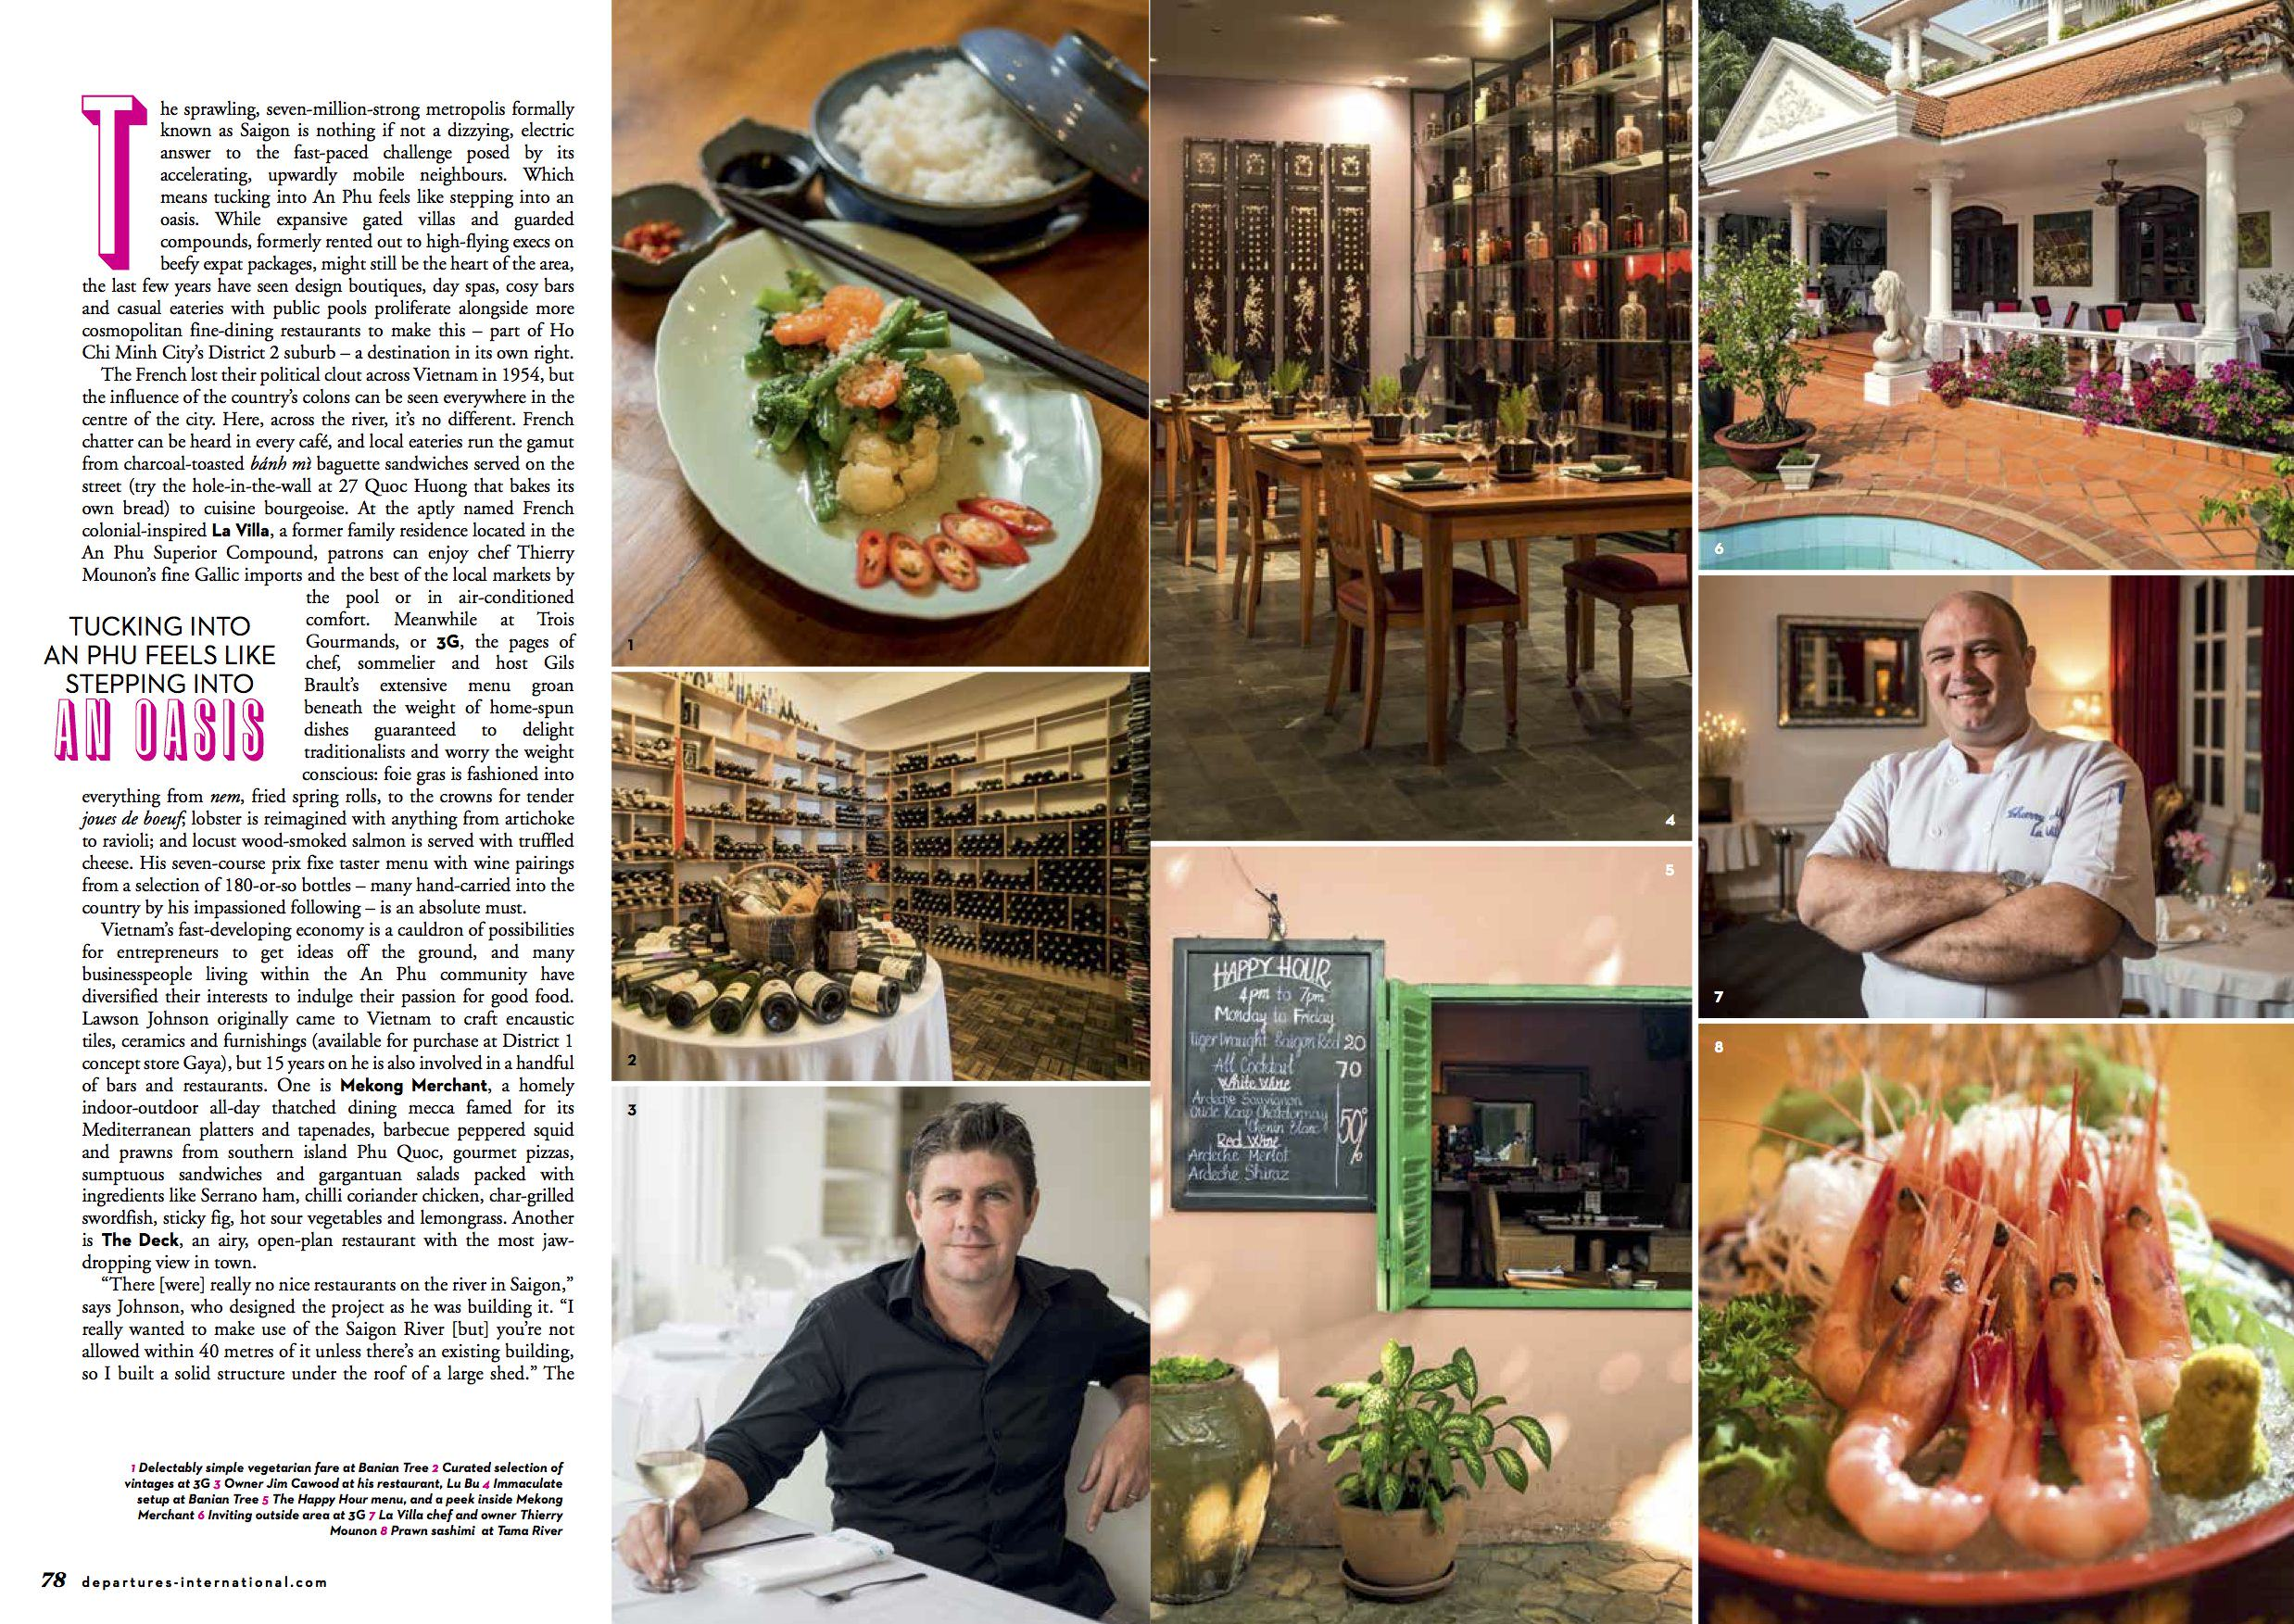 Departures Magazine Fred Wissink Photography www.fredwissink.com editorial 2014 March food chef photography anphu district2 ho chi minh city page2